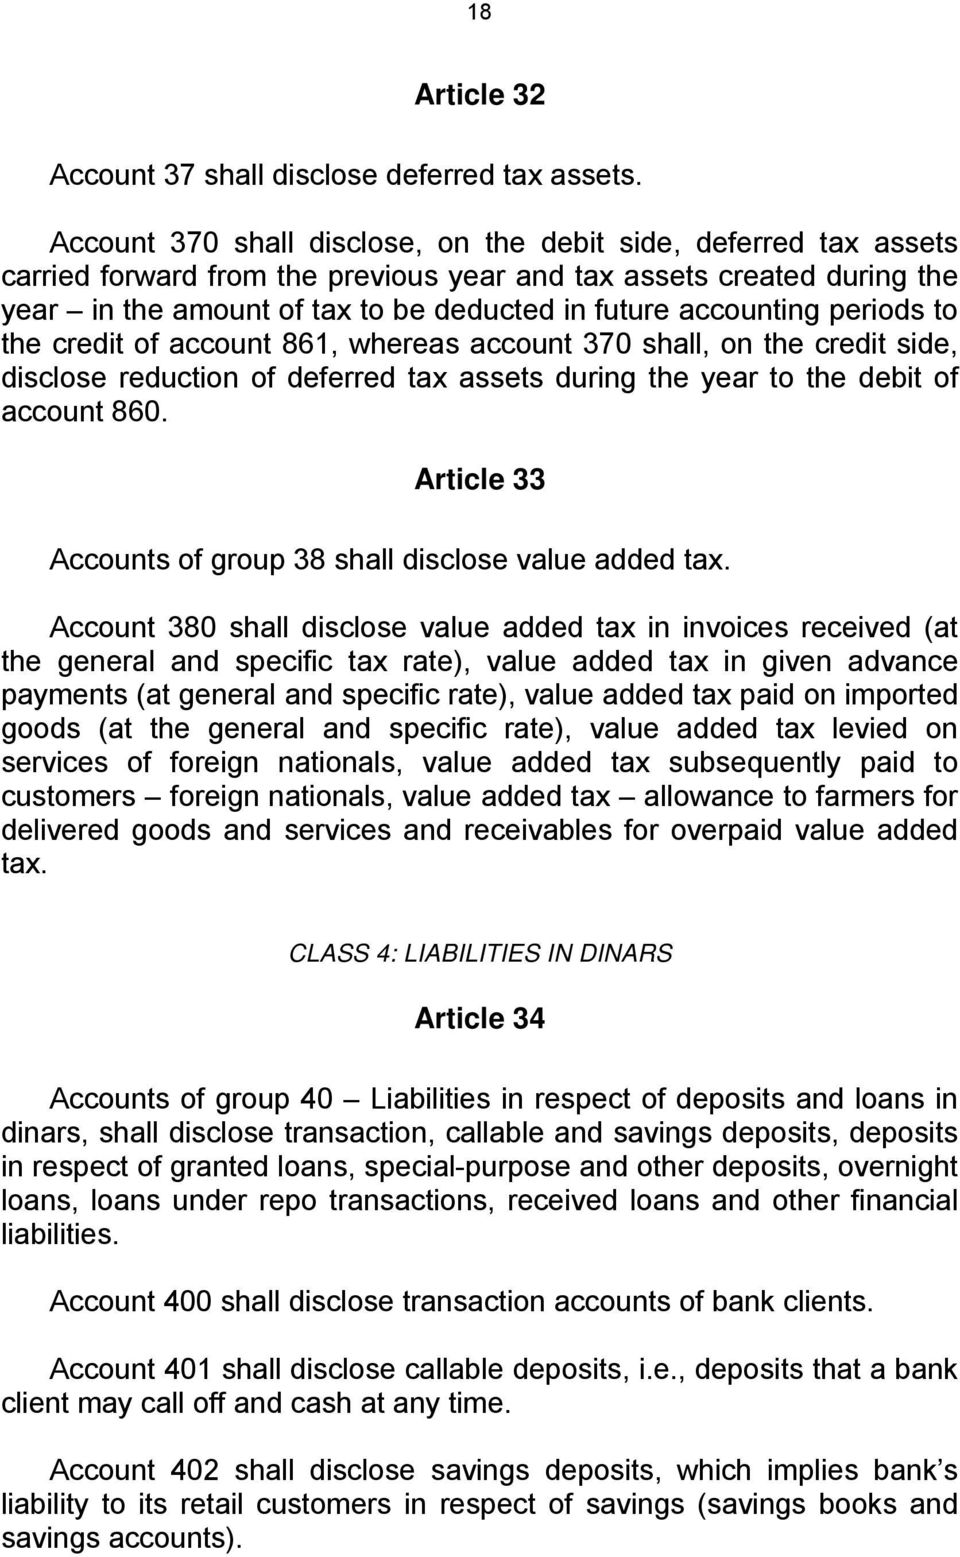 accounting periods to the credit of account 861, whereas account 370 shall, on the credit side, disclose reduction of deferred tax assets during the year to the debit of account 860.